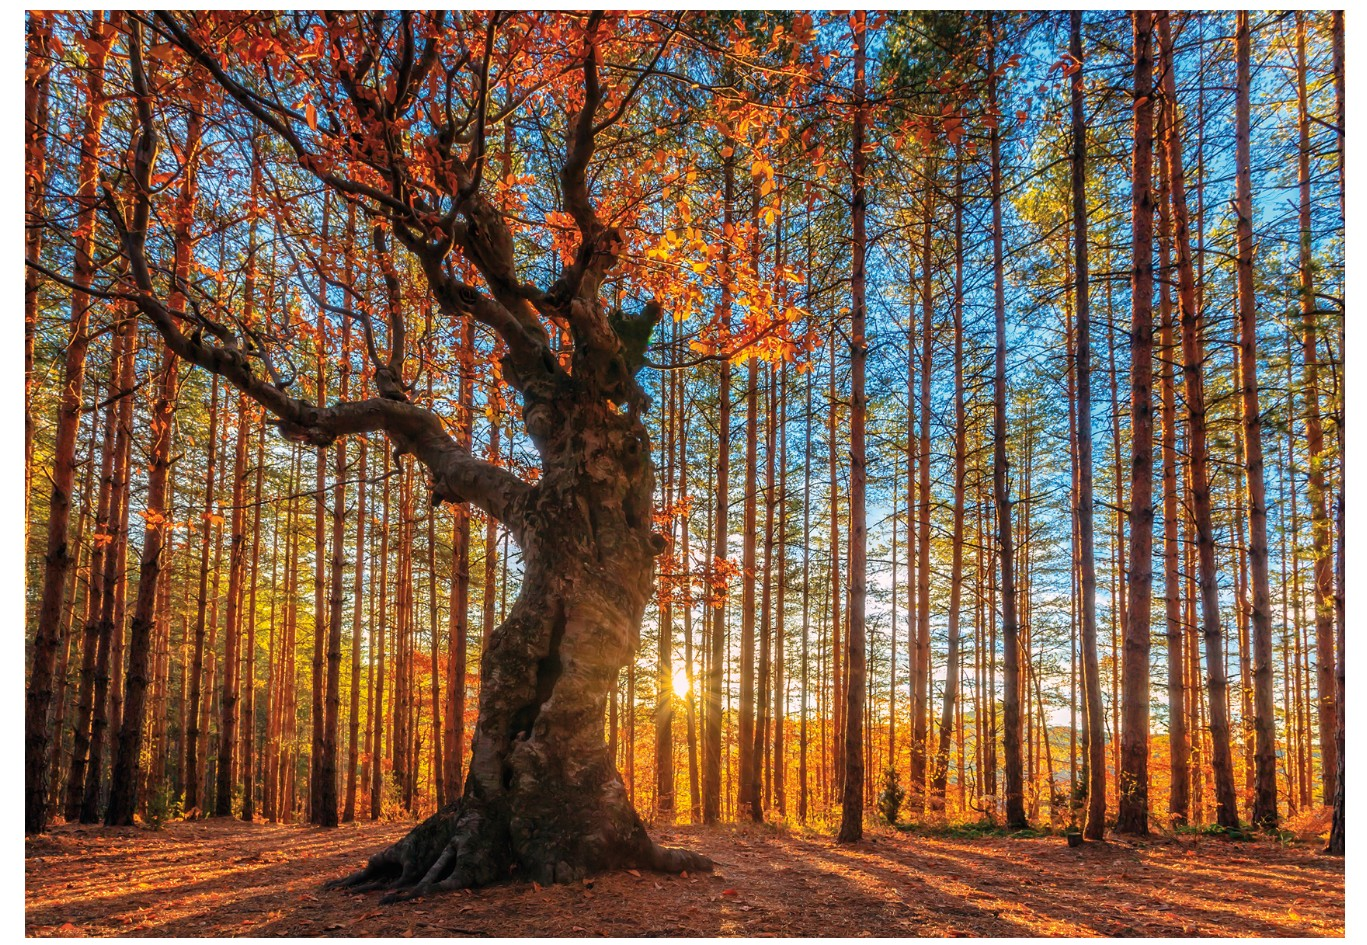 wentworth-holzpuzzle-the-king-of-the-forest-250-teile-puzzle-wentworth-640101